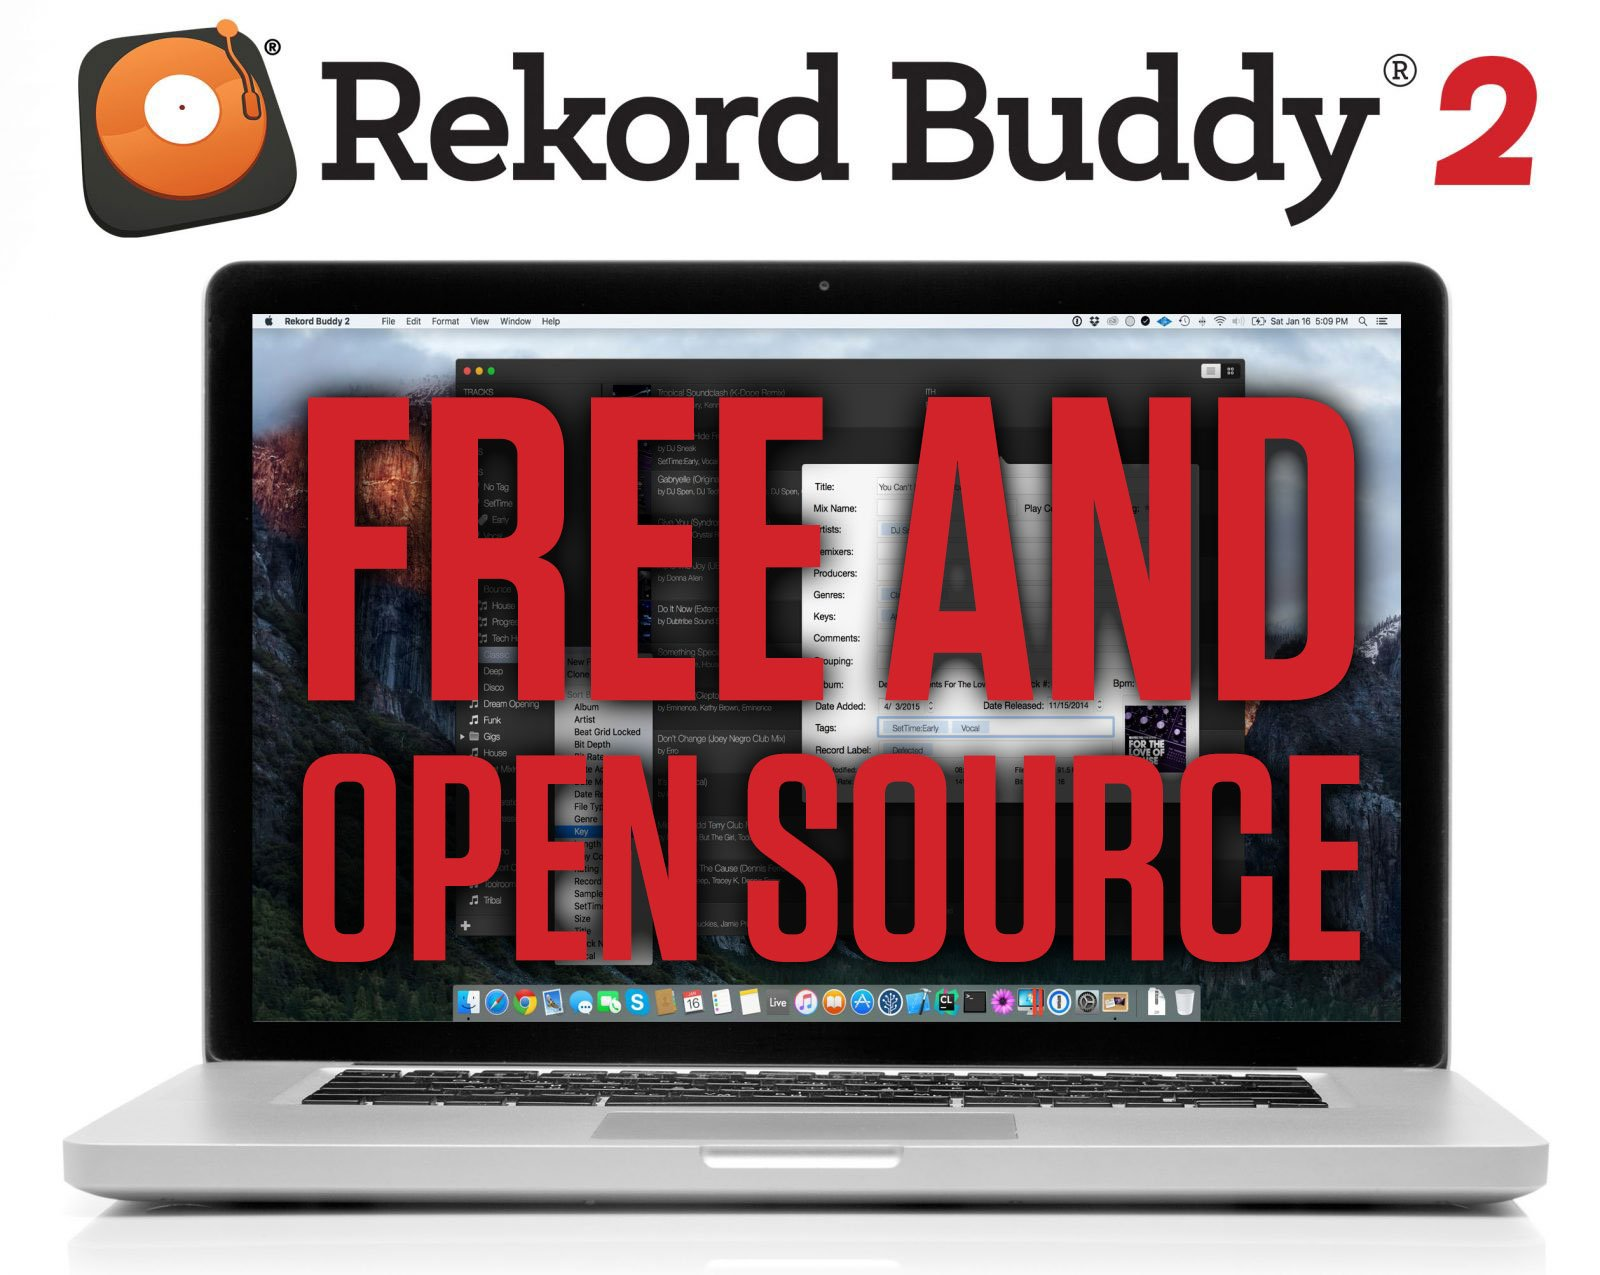 rekord buddy free open source